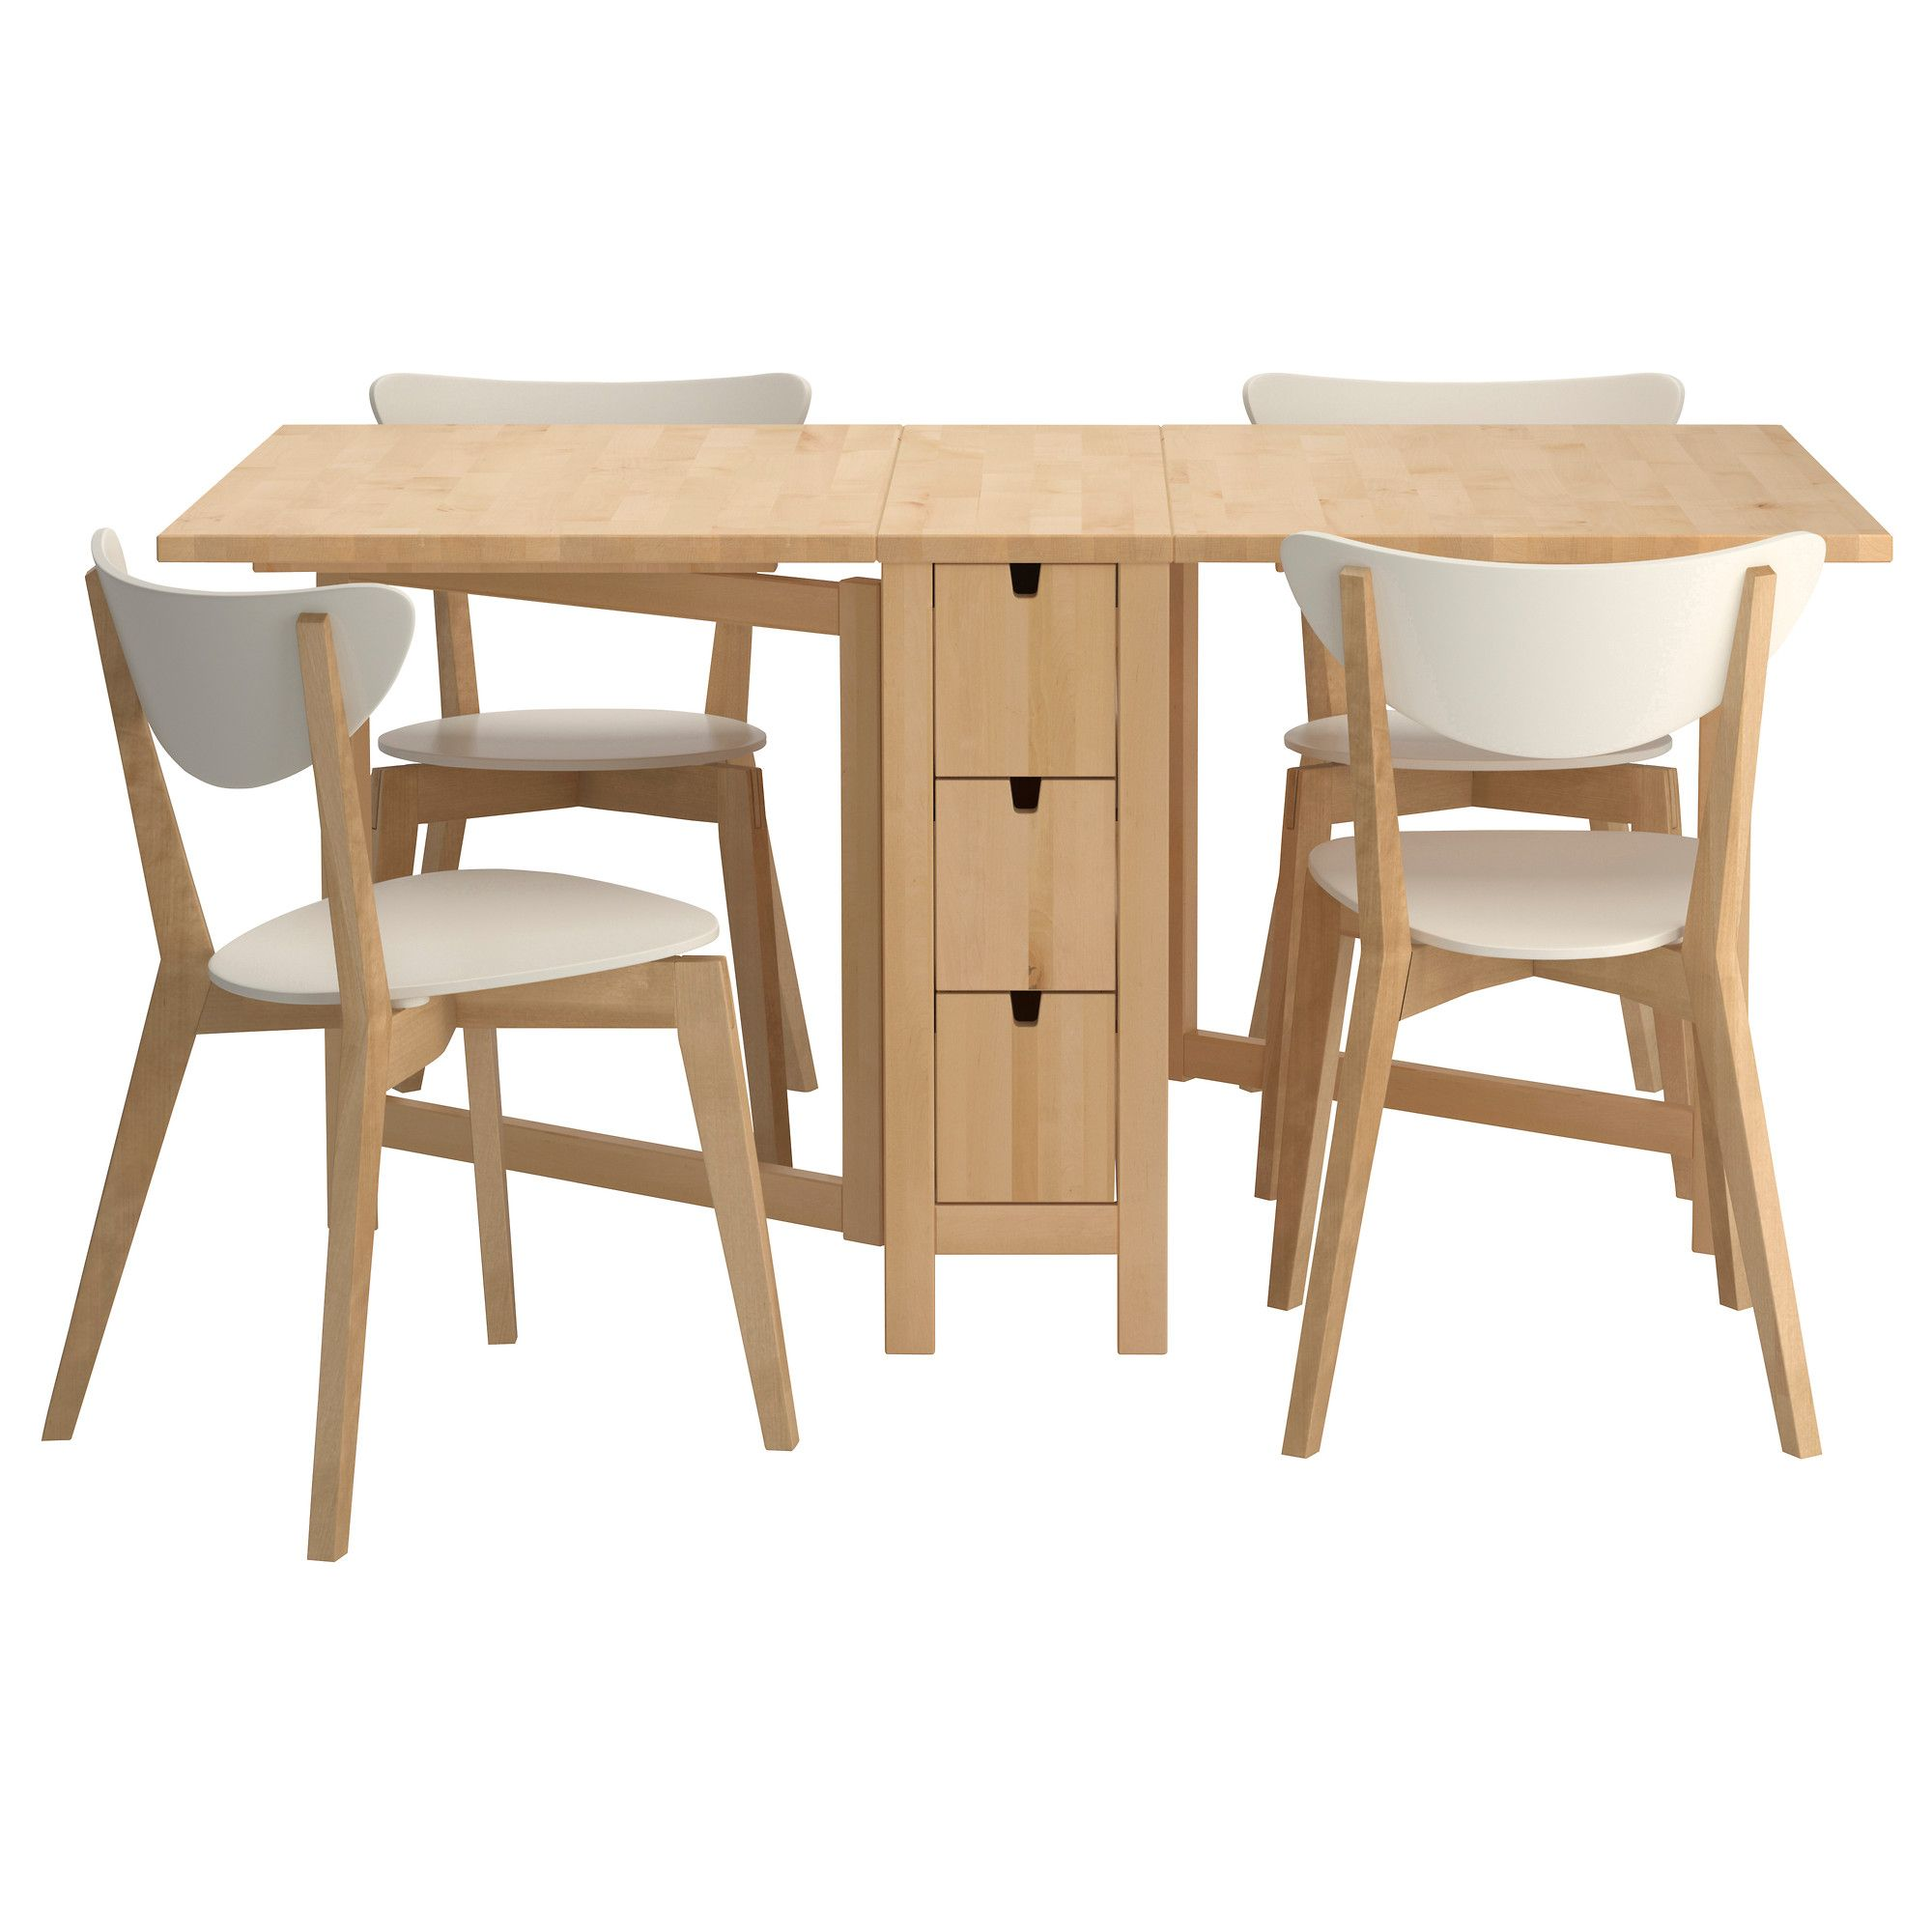 Norden nordmyra table and 4 chairs ikea for the love for Dining room tables for small kitchens